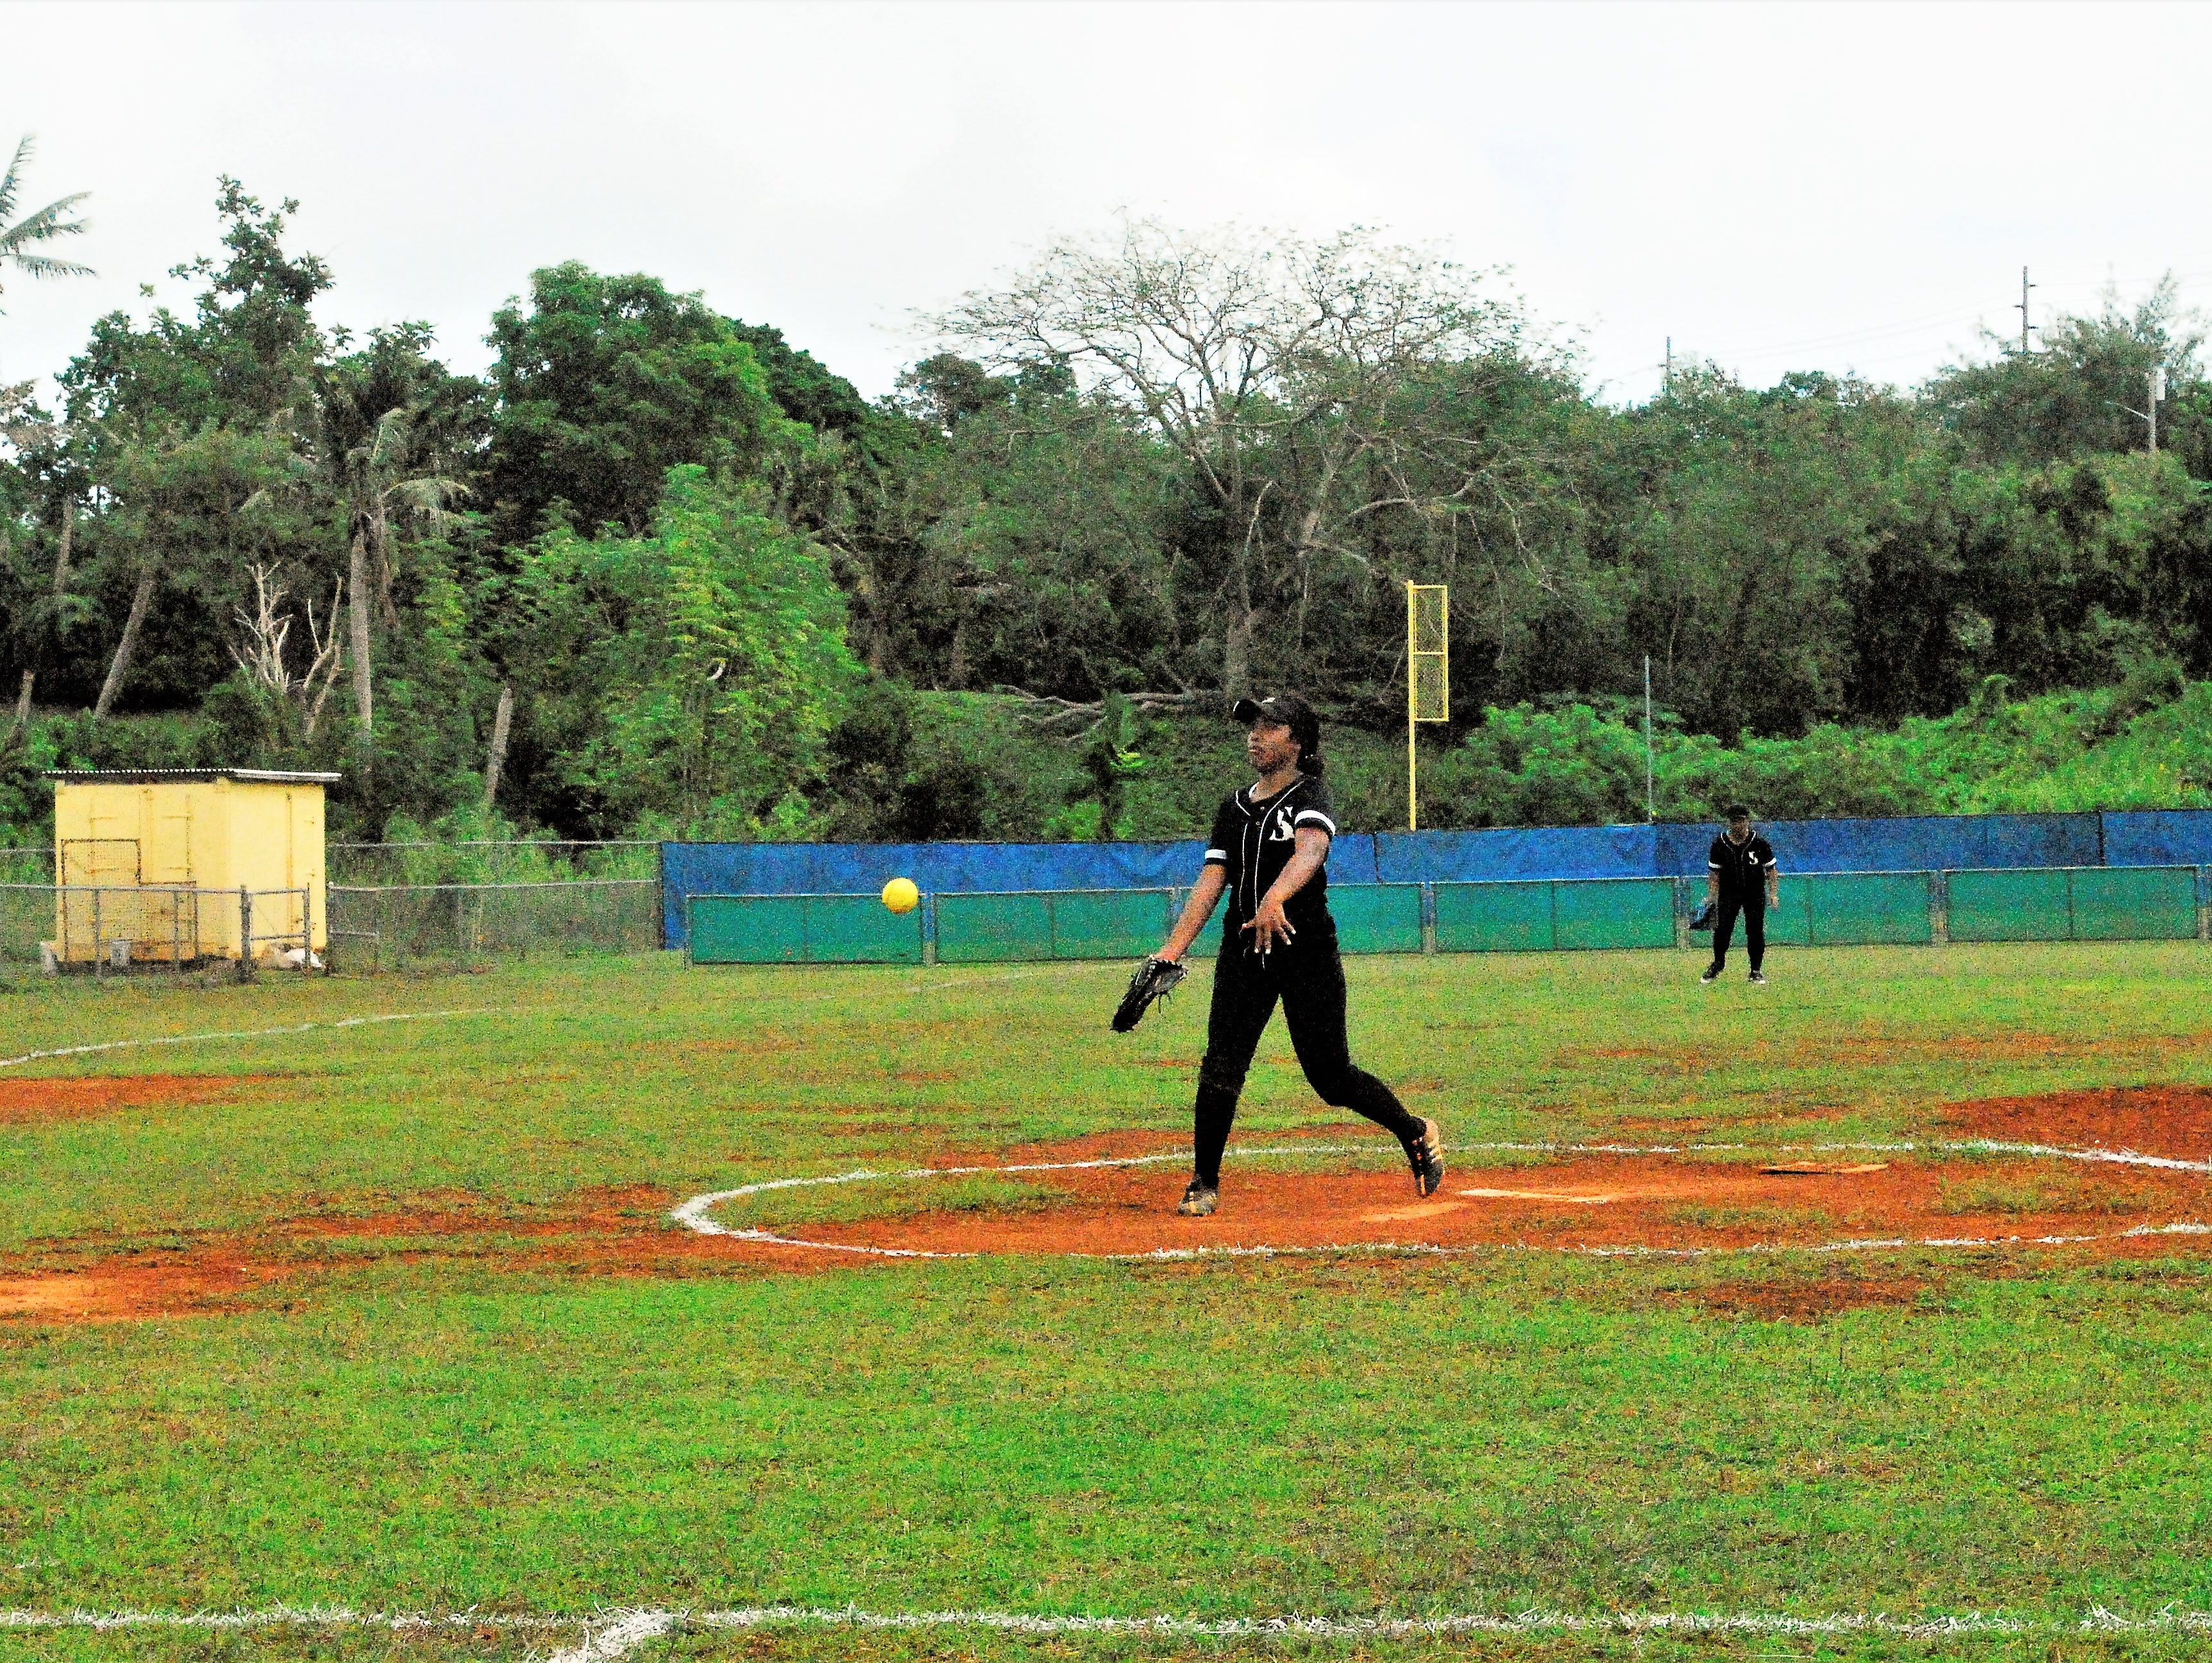 Simon Sanchez Sharks pitcher Ginae Joseph pitches against the Academy Cougars during their IIAAG High School Girls Softball game on Saturday, Feb. 2 at Tai Field in Mangilao.